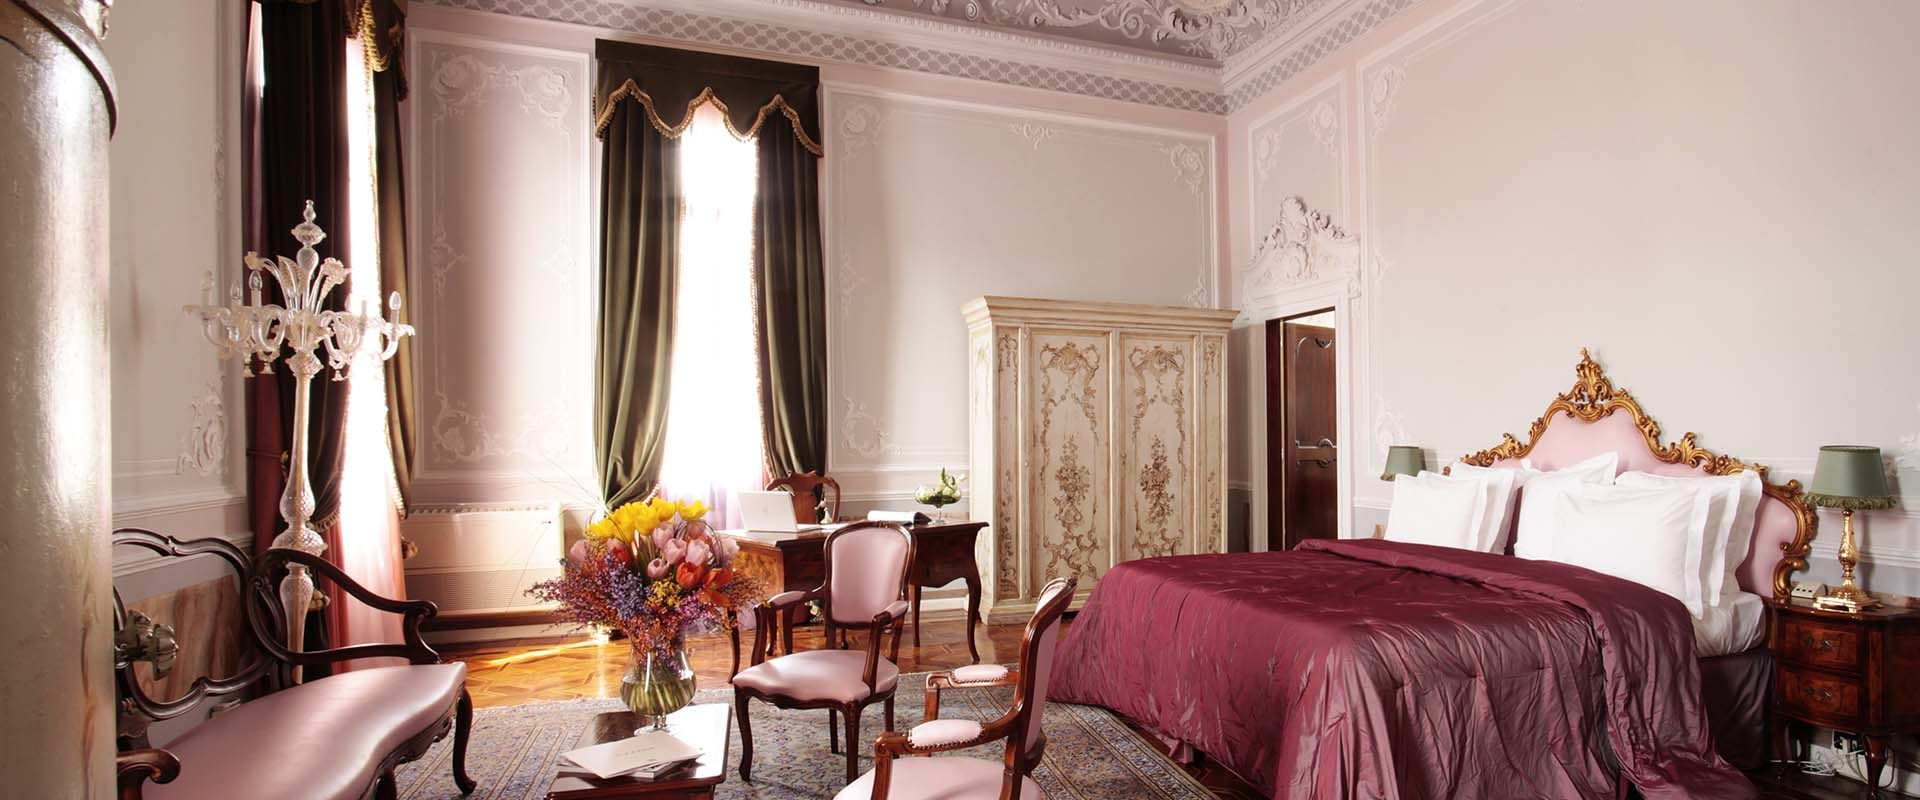 The Junior Suite bedroom with elegant furnishings at the Grand Hotel Dei Dogi in Venice